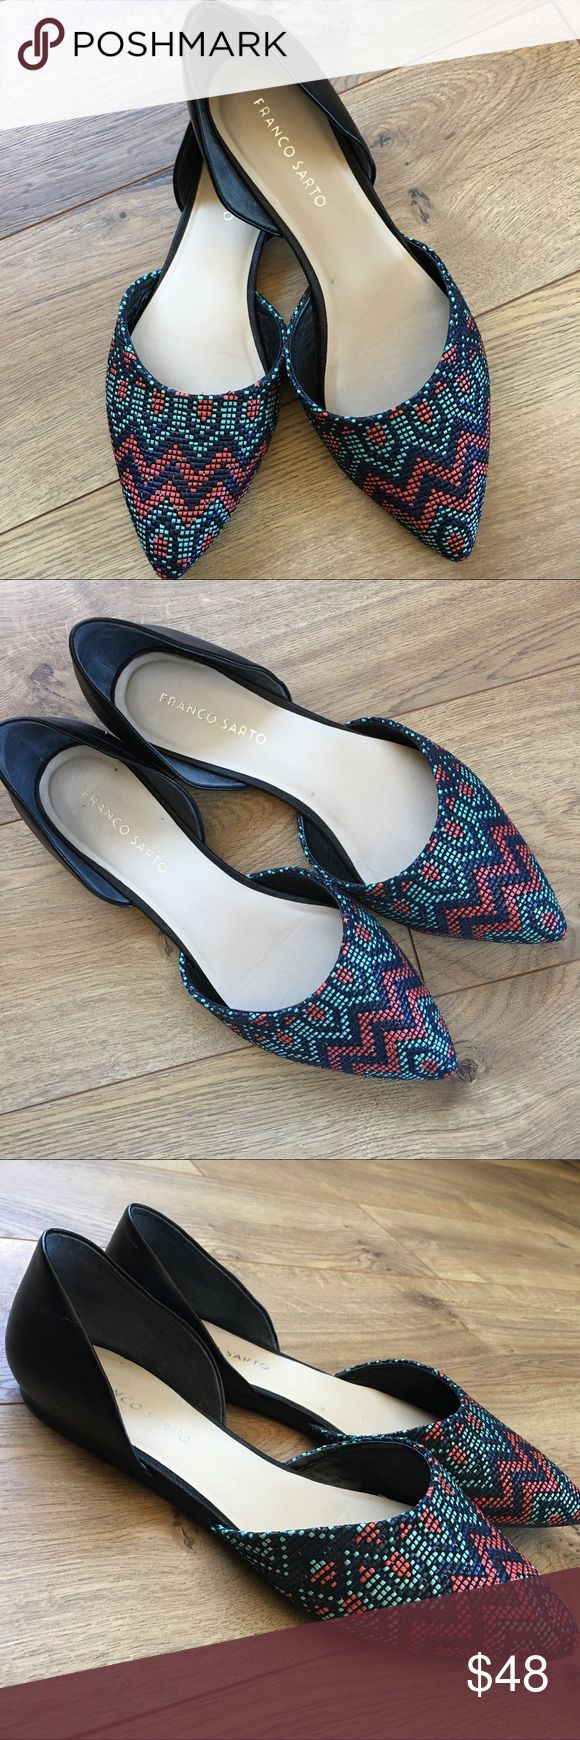 FRANCO SARTO D'orsay Aztec Flat Shoes - 9 FRANCO SARTO D'orsay Aztec Flat Shoes - size 9. Only been worn once. EUC. See small scuff on inside right heel (see last photo). No issues. Smoke free home. Franco Sarto Shoes Flats & Loafers